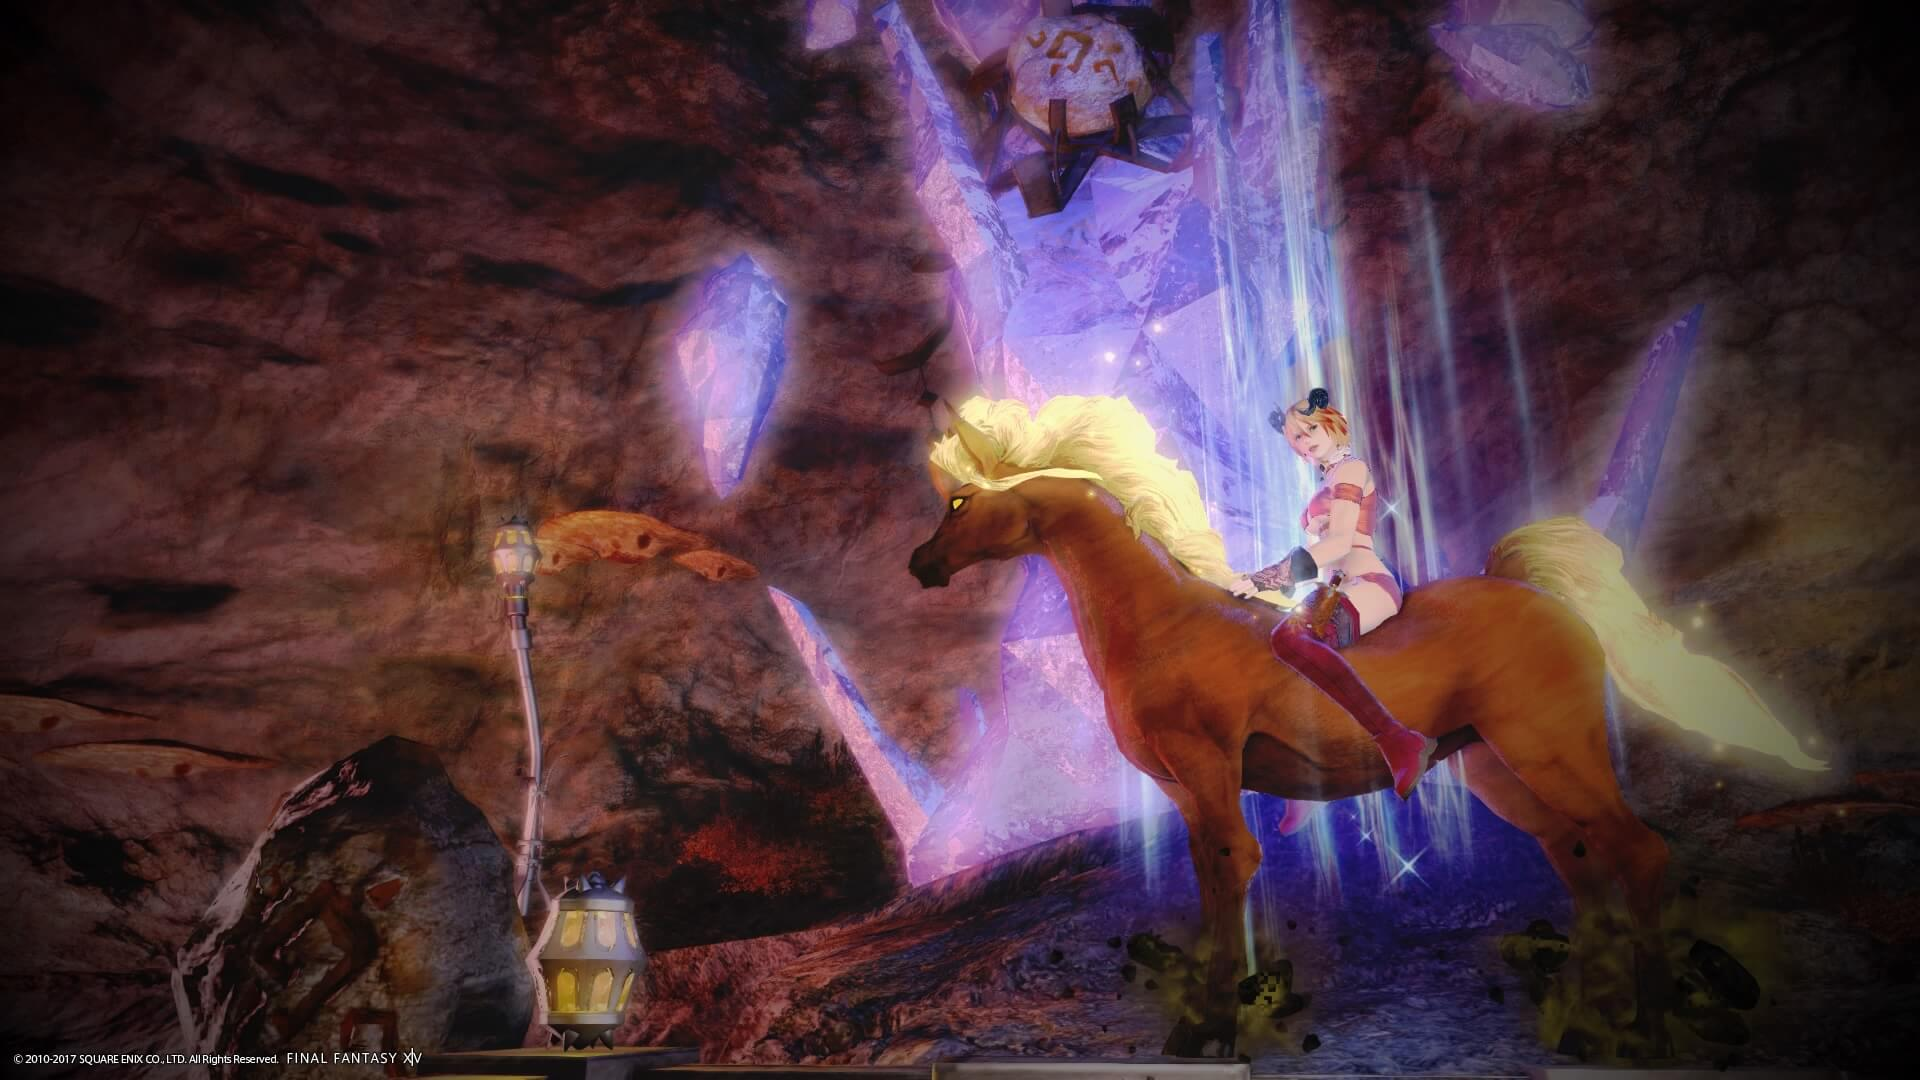 FFXIV: Shadowbringers Guide - How to Get the Gullfaxi Mount